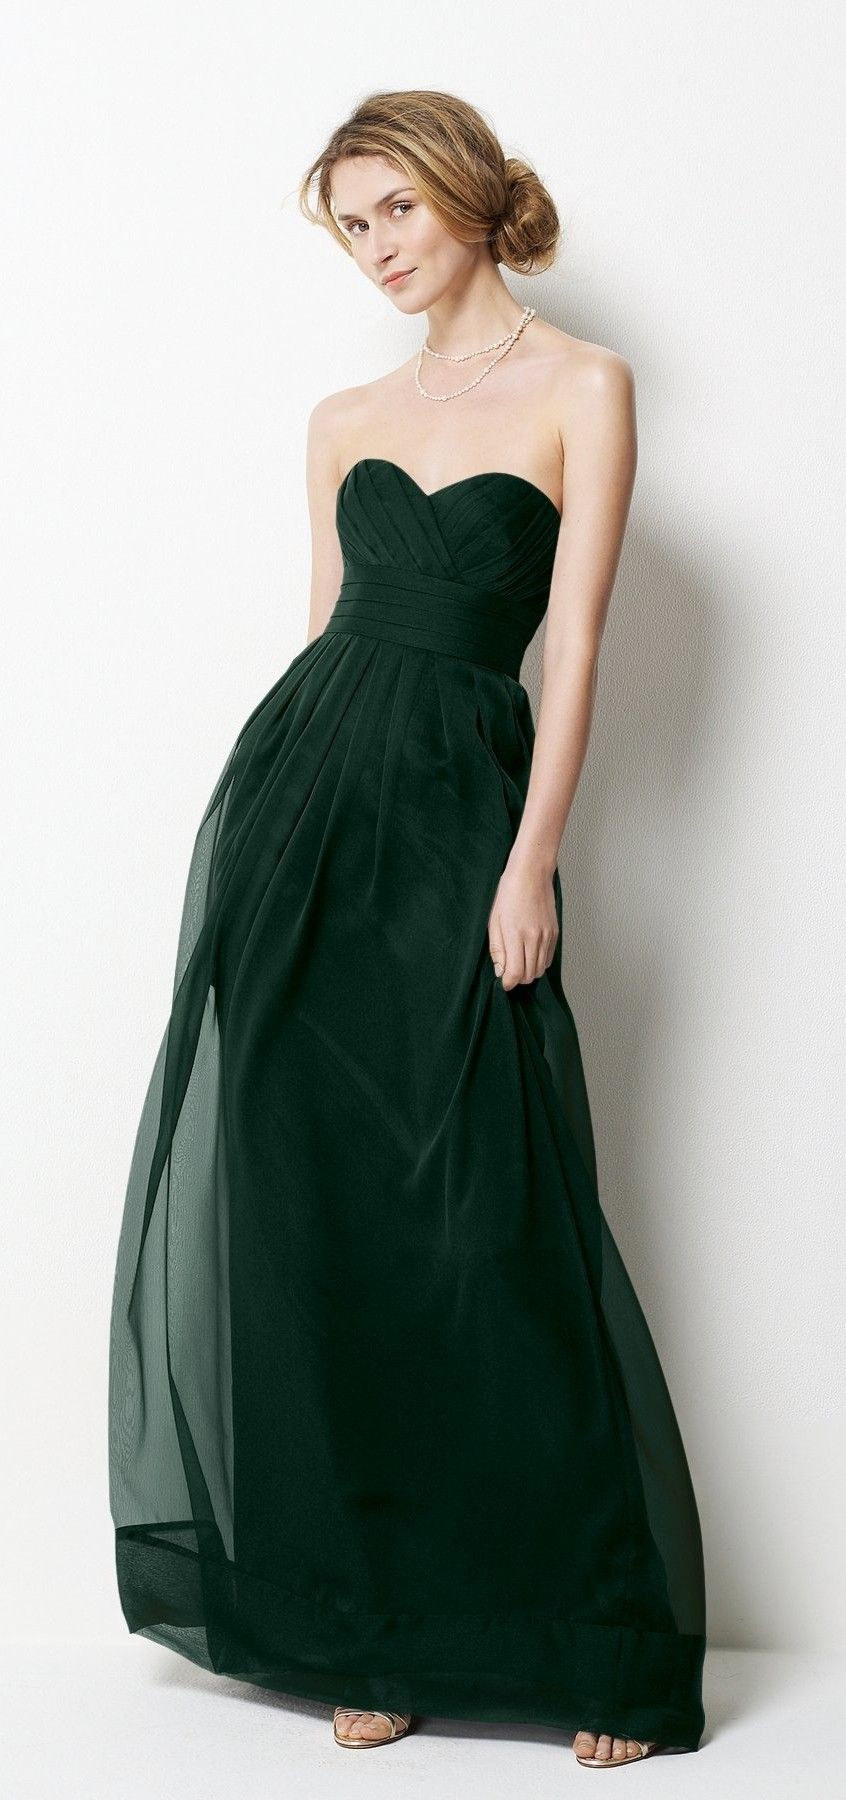 Oooh dark green dress not a fan of strapless but i dooo like this